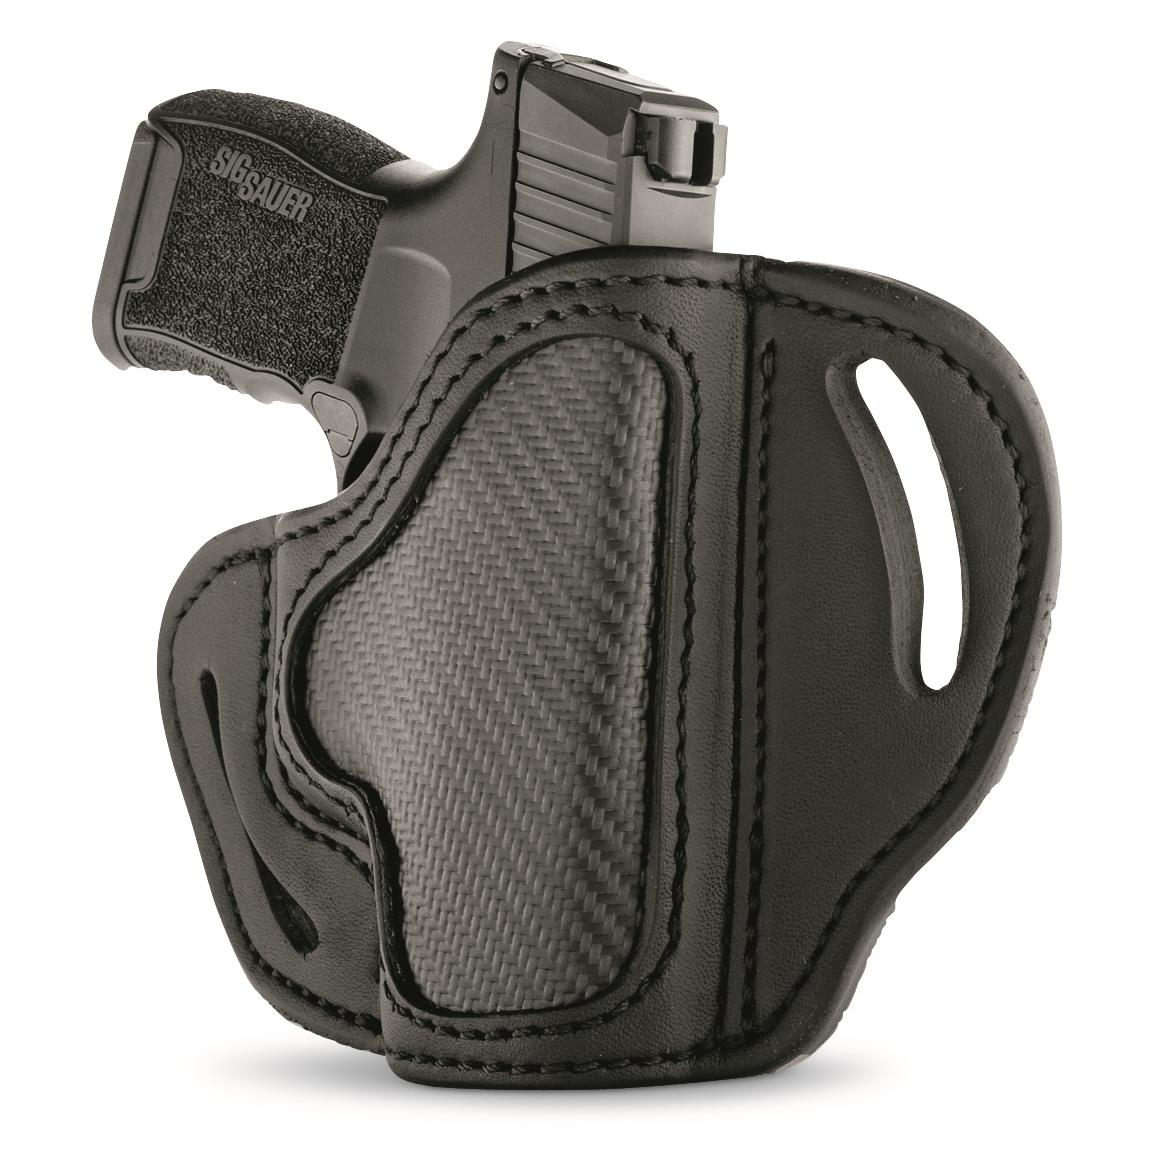 1791 Gunleather Carbon Fiber BHC Compact OWB Holster